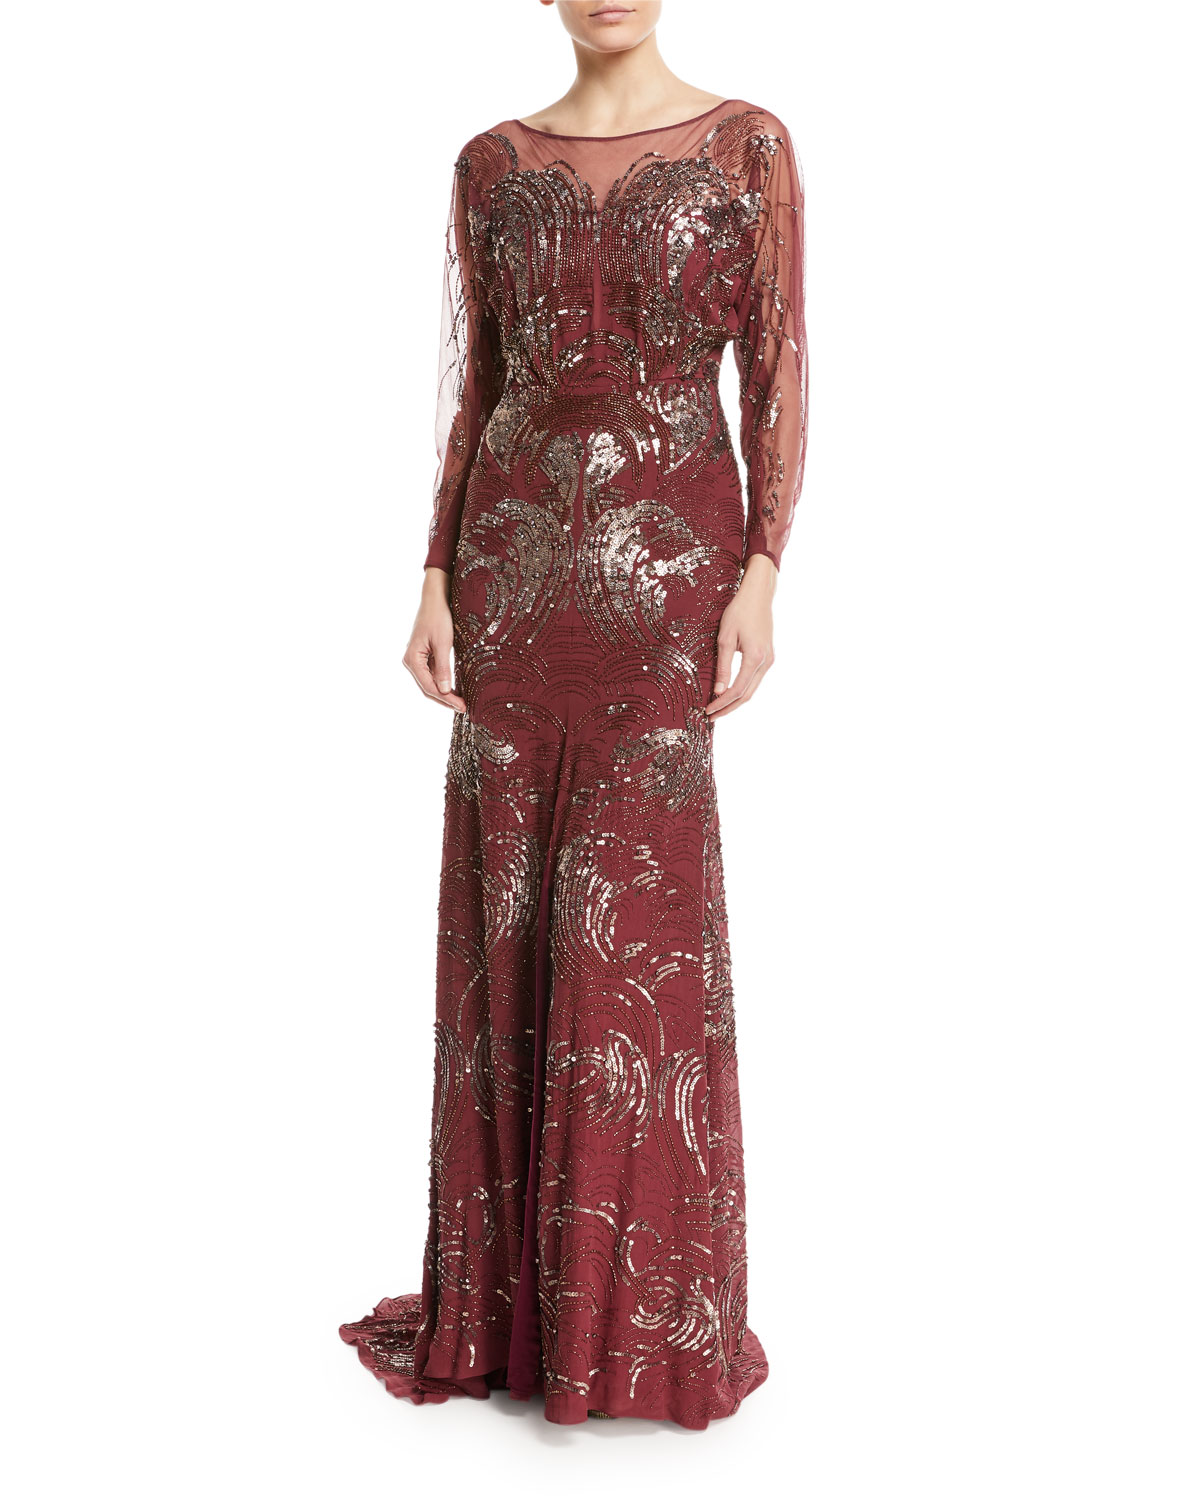 JENNY PACKHAM LONG-SLEEVE SWIRL SEQUIN BEADED EVENING GOWN, PURPLE ...